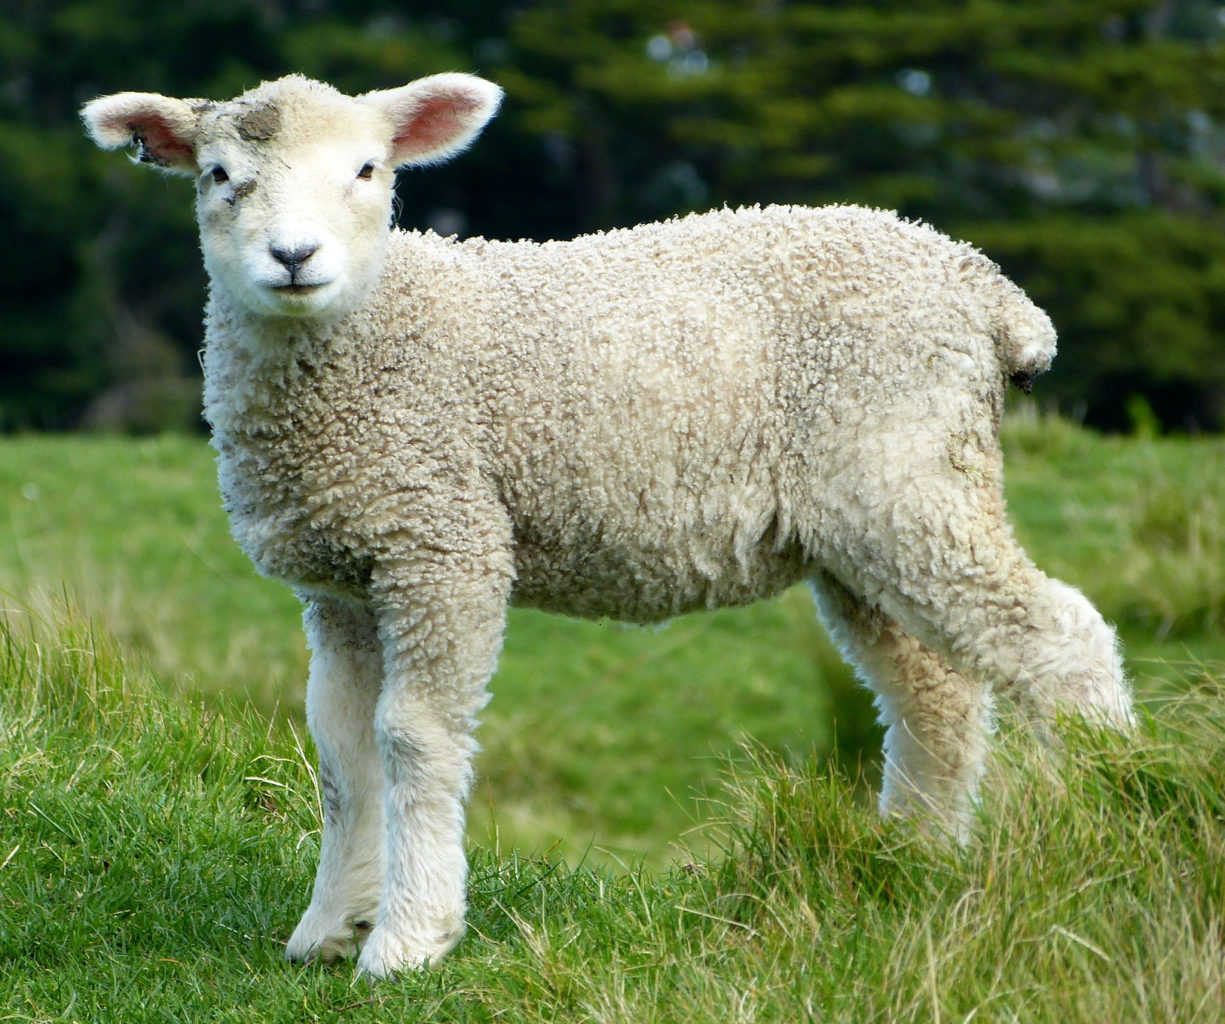 Baby sheep standing in grassy field